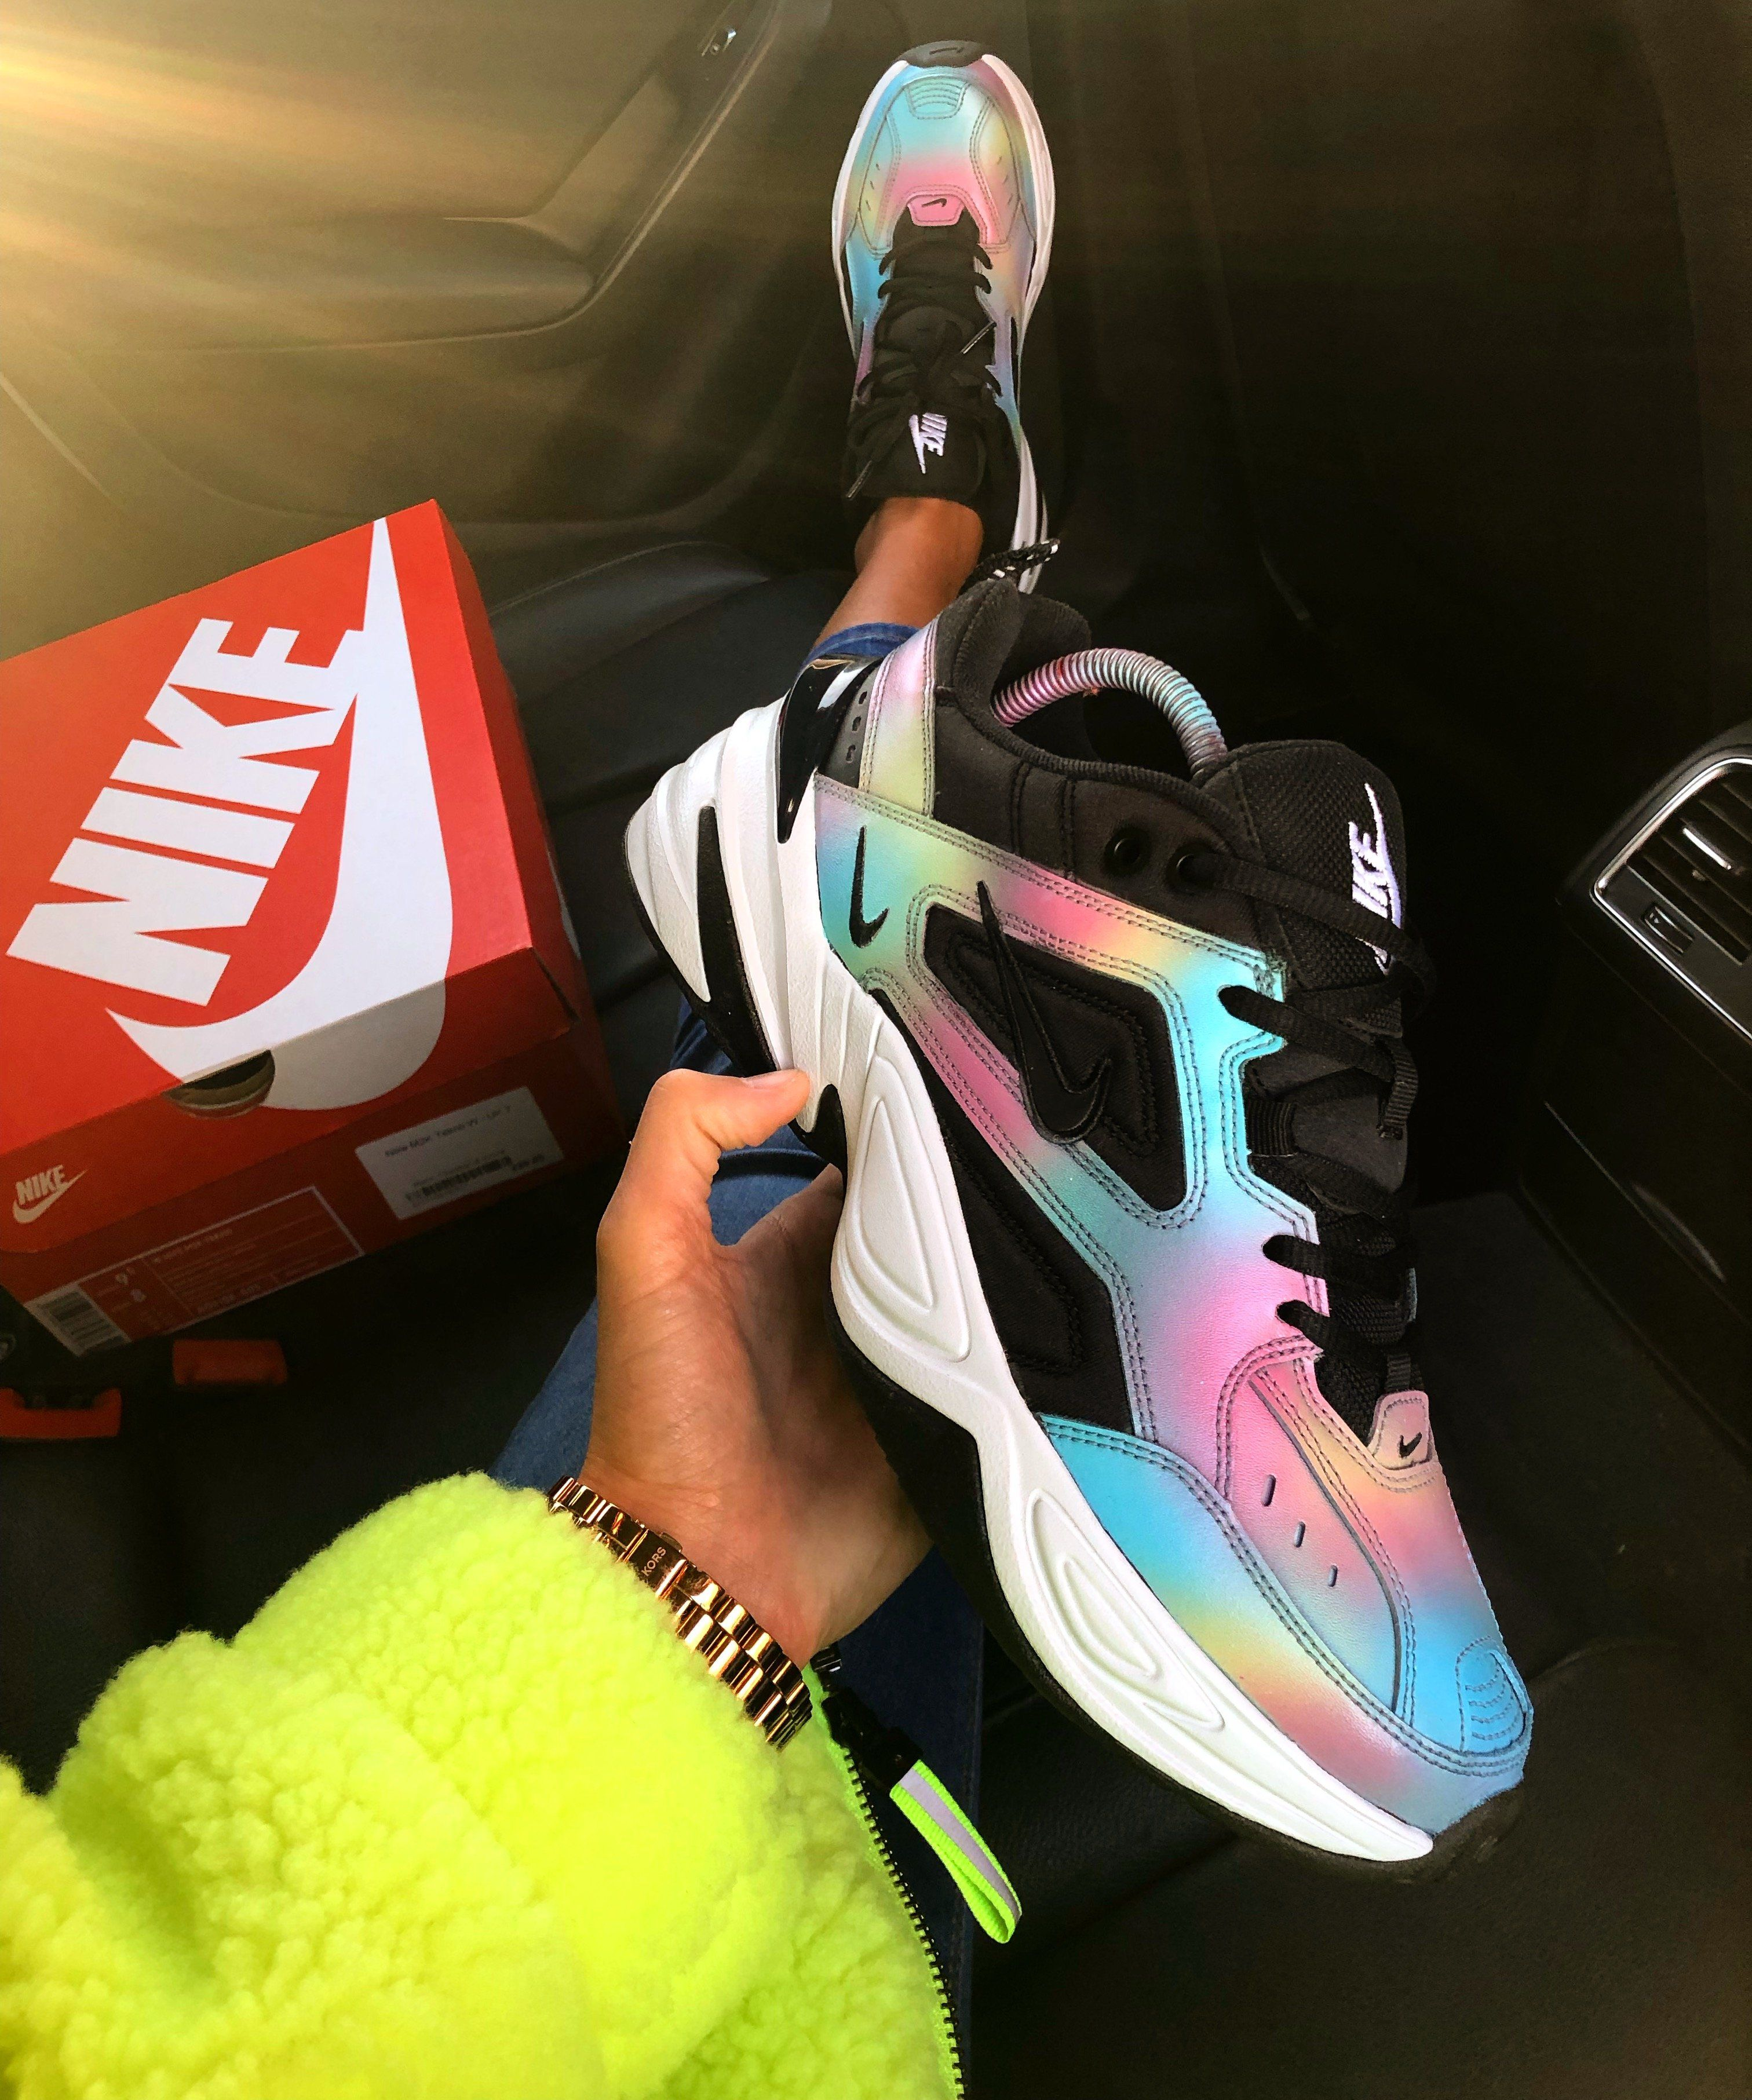 size 40 85dd1 a10d0 Oil Spill painted to perfection on Nike M2K tekno. These are customised and  made to order to each individual customer order.Upon purchasing my product,  ...